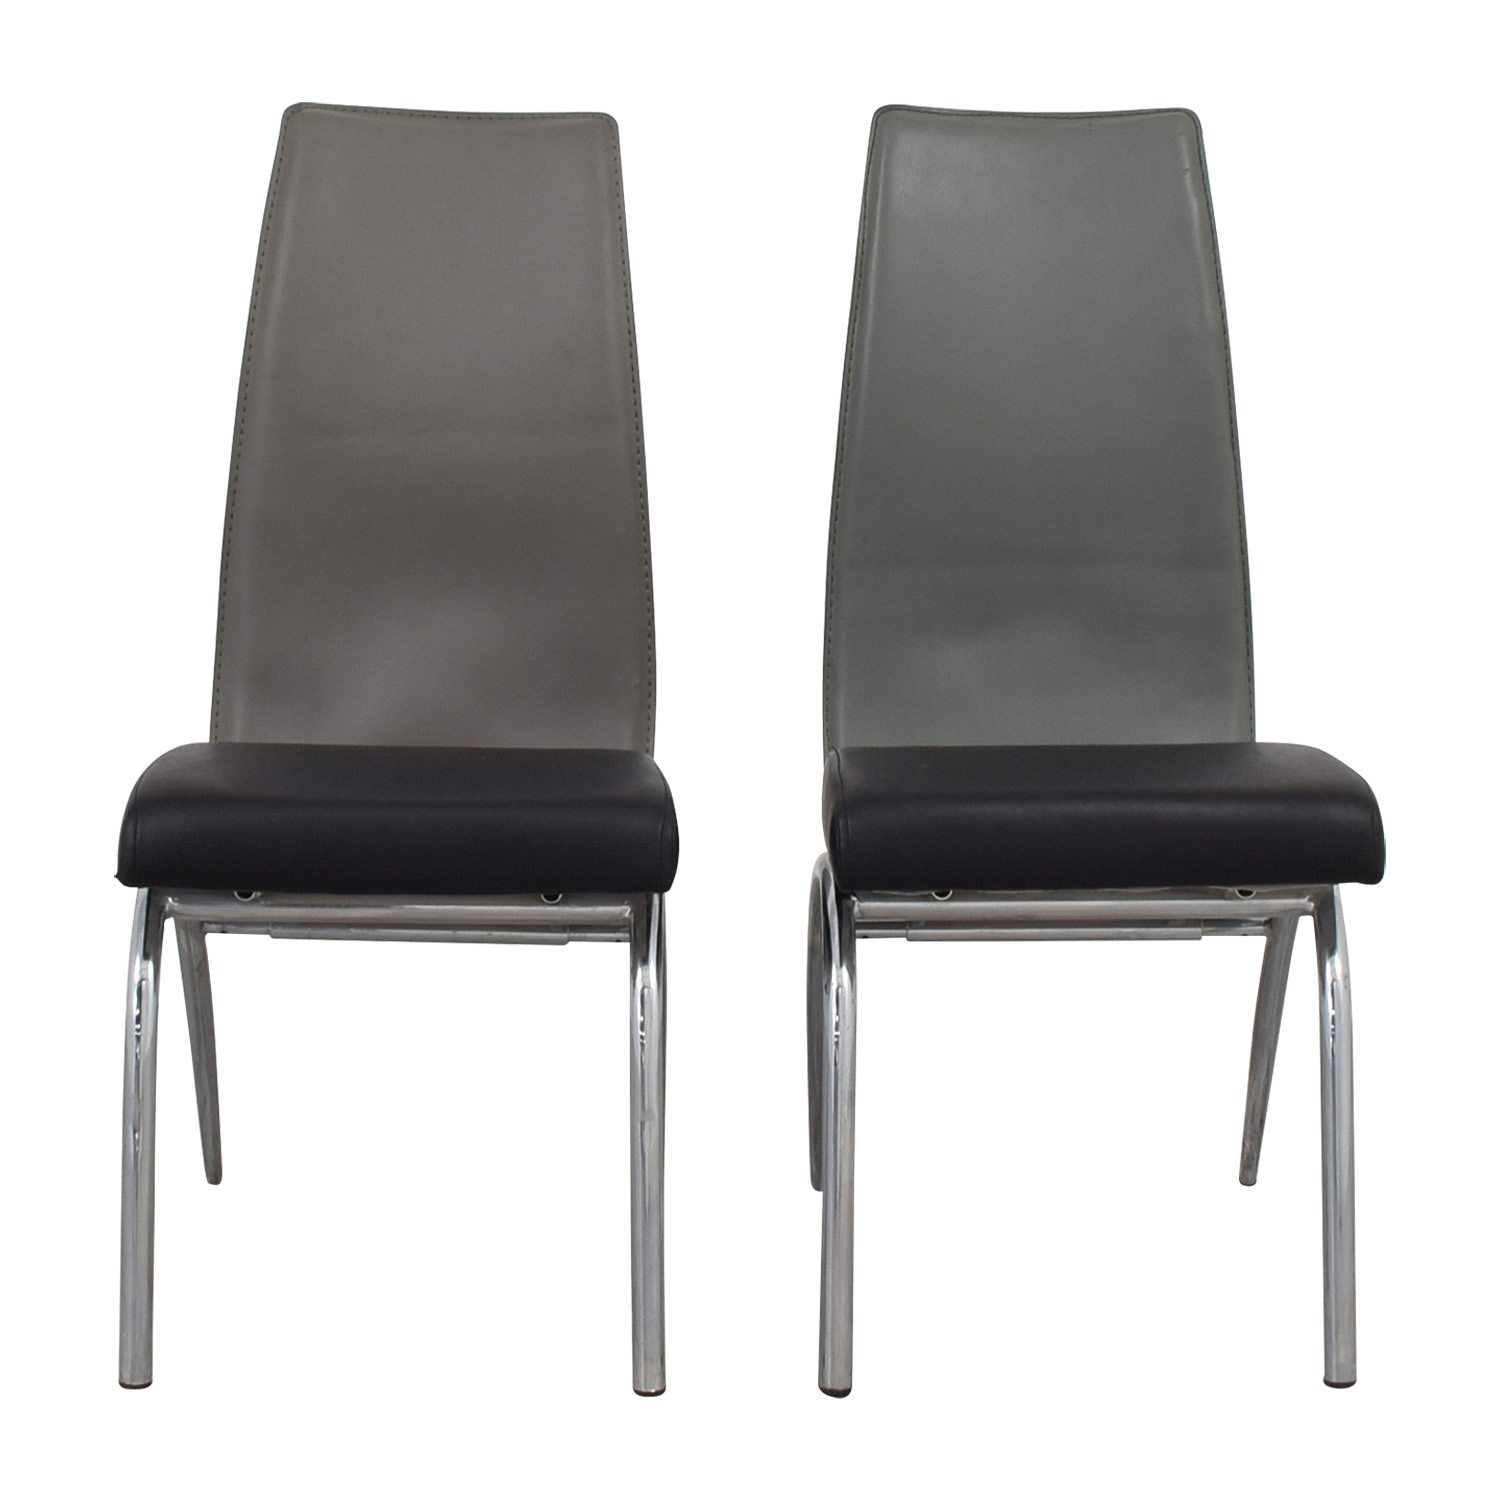 ESF ESF Black and Grey Modern Dining Chair Dining Chairs